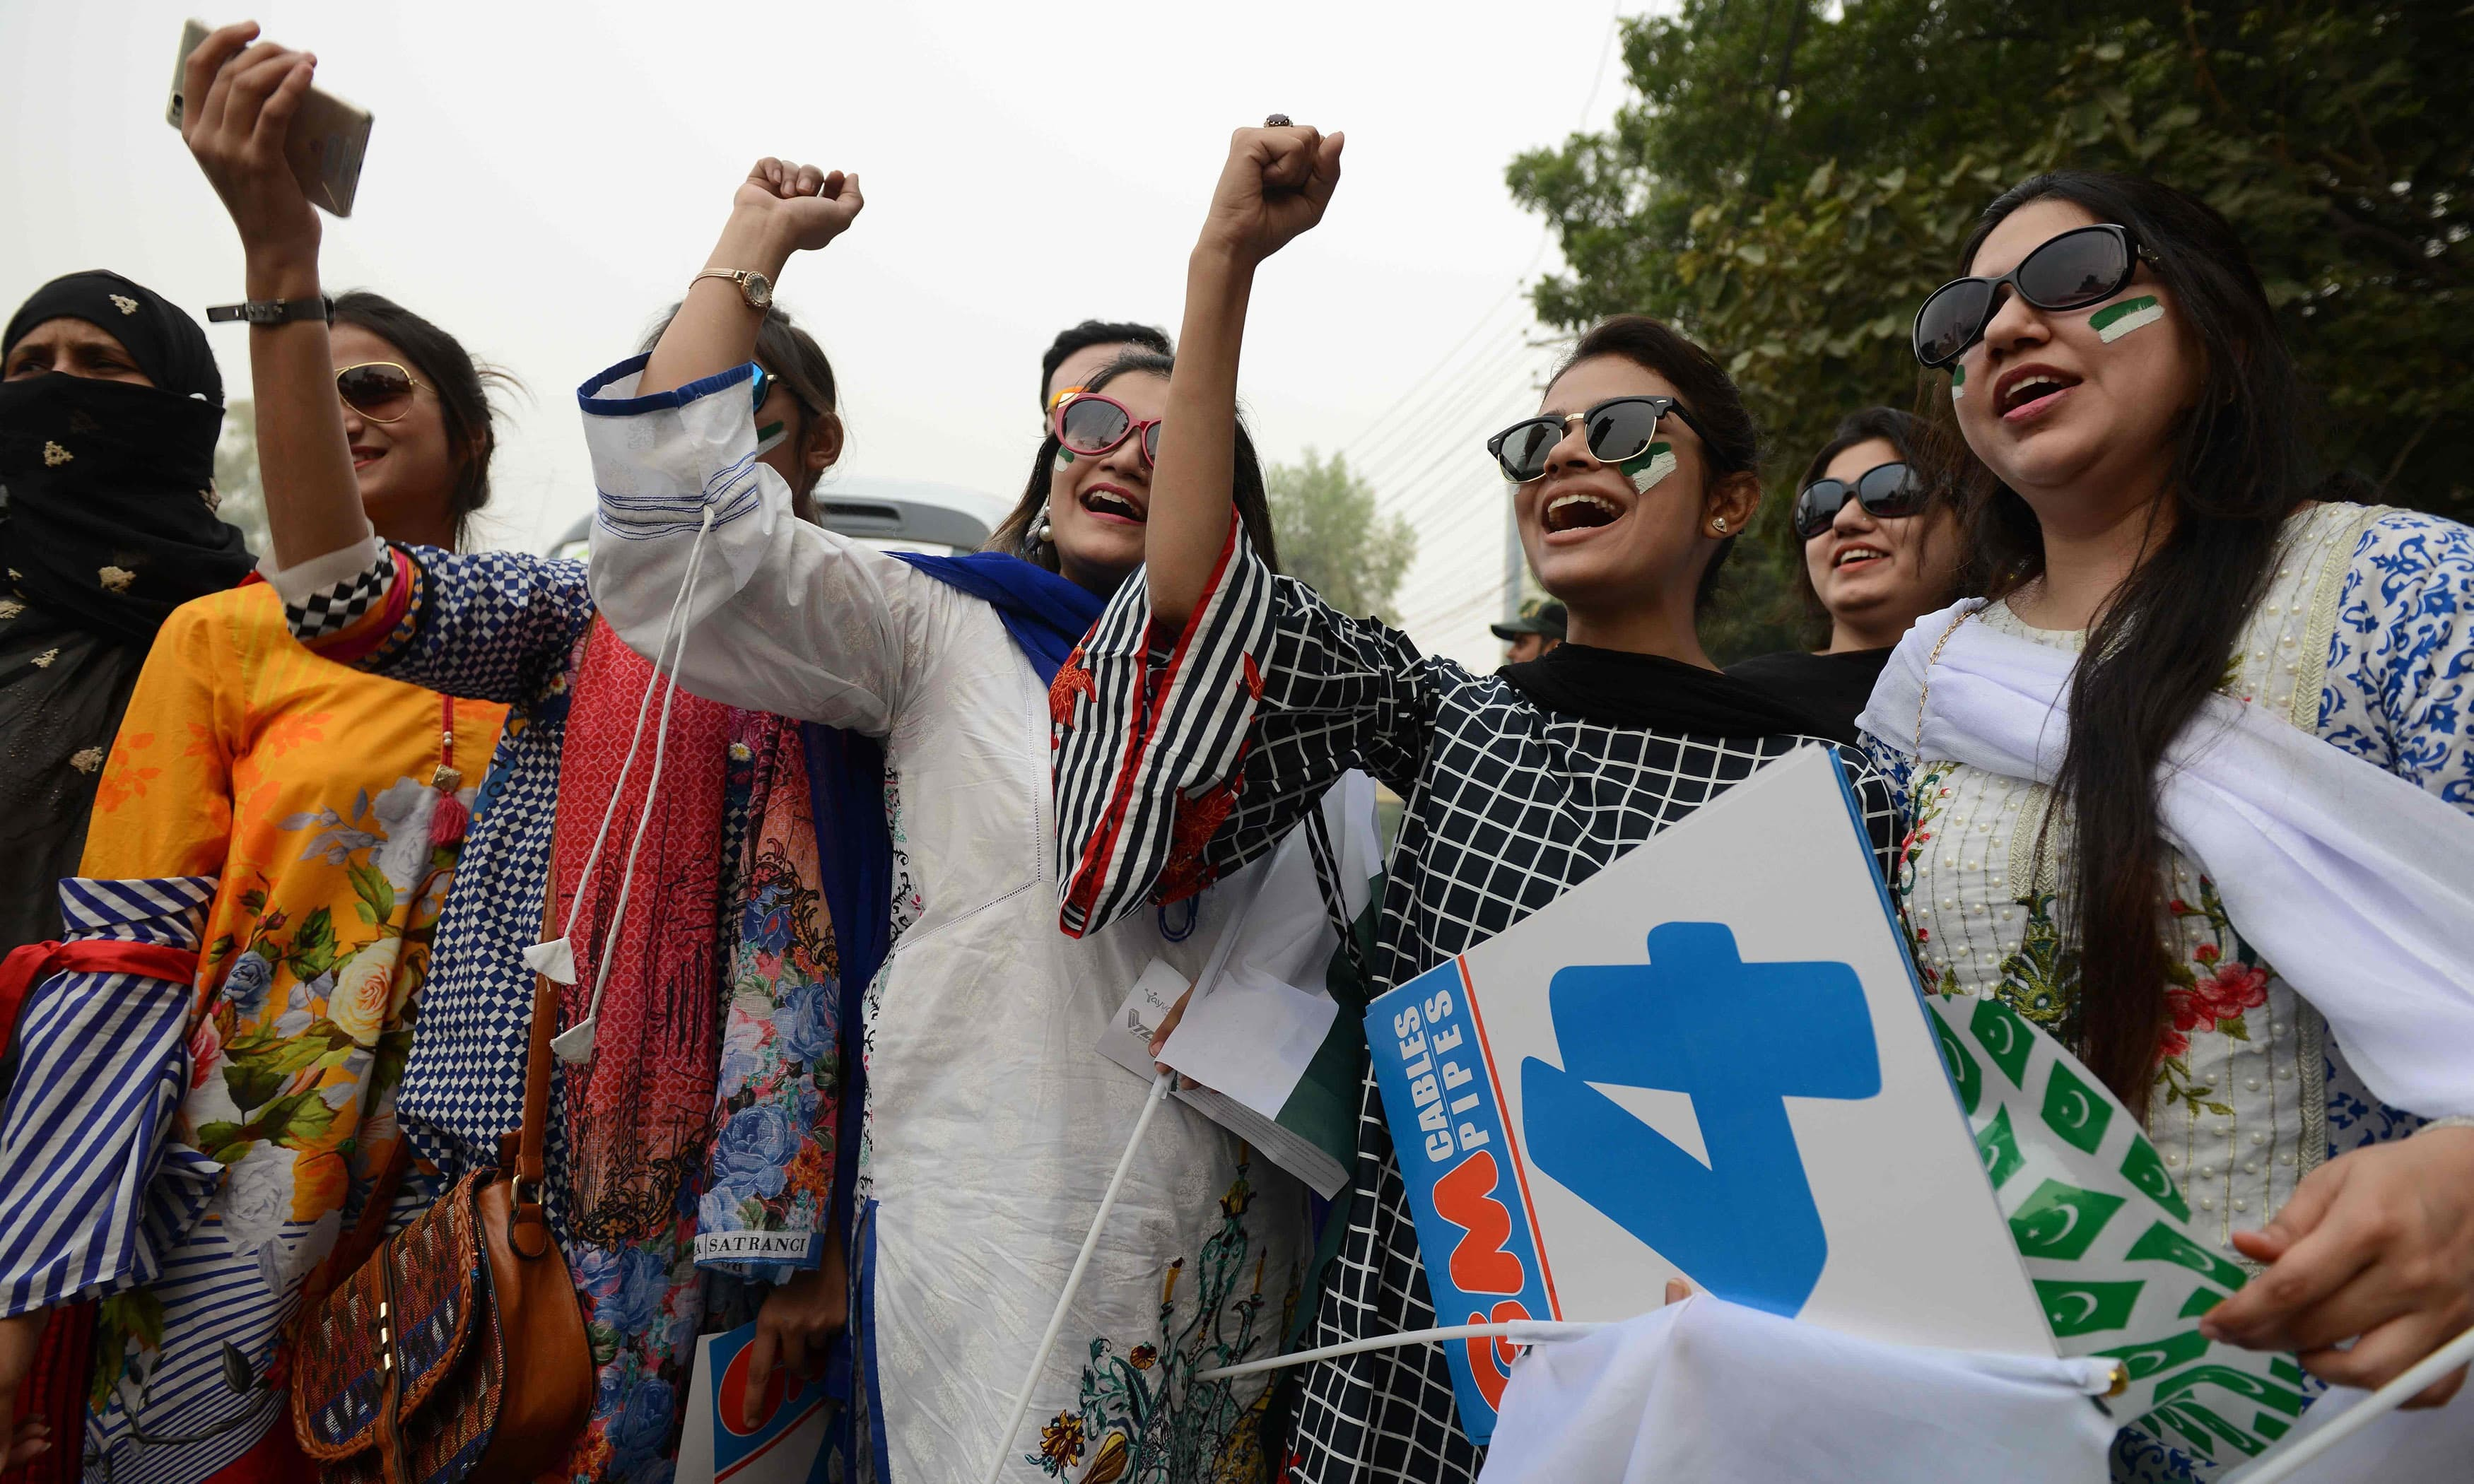 Women cheer as they arrive to watch the T20 cricket match between Pakistan and Sri Lanka. —AFP